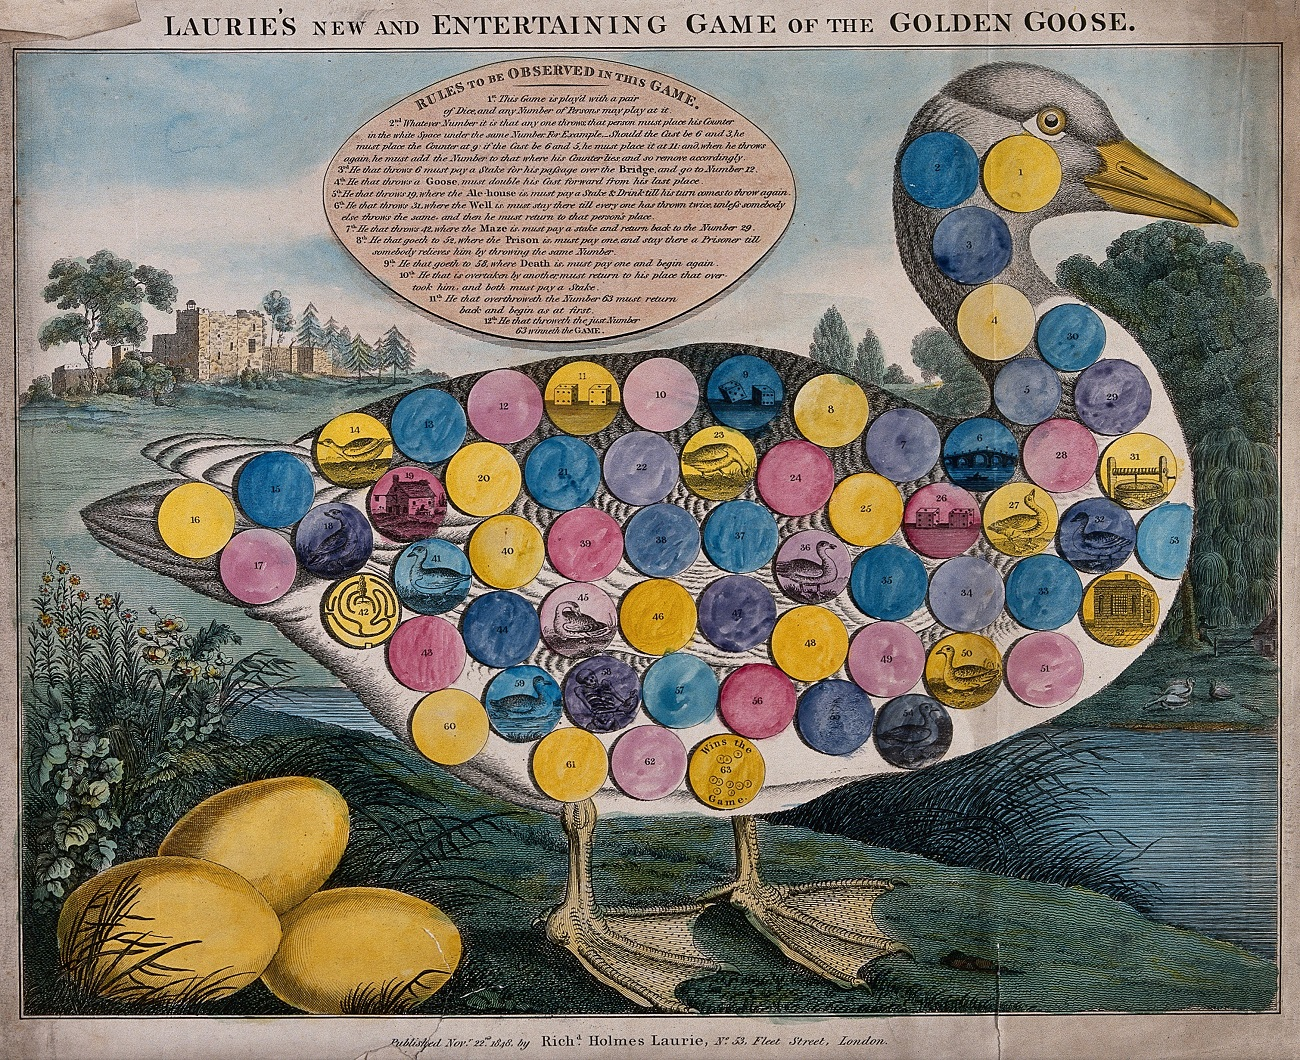 A large goose, with three golden eggs: numbered circles printed on the body of the goose for playing the game of goose. Coloured engraving.. Credit: Wellcome Collection. Attribution 4.0 International (CC BY 4.0)